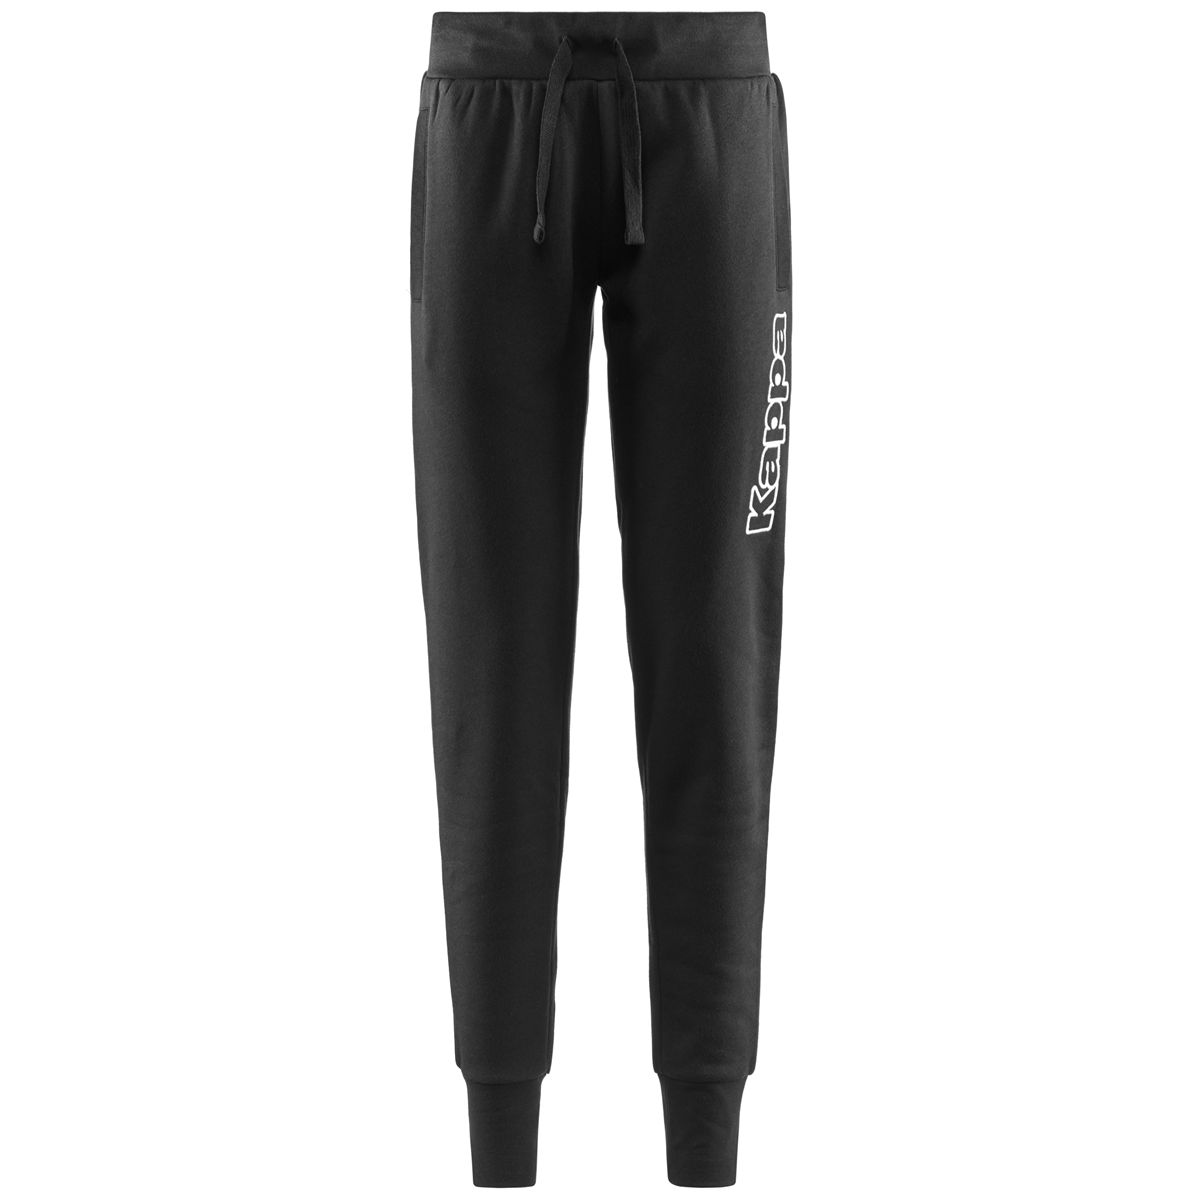 Kappa Pants KAPPA4VOLLEY WINCAN Woman Sport Trousers